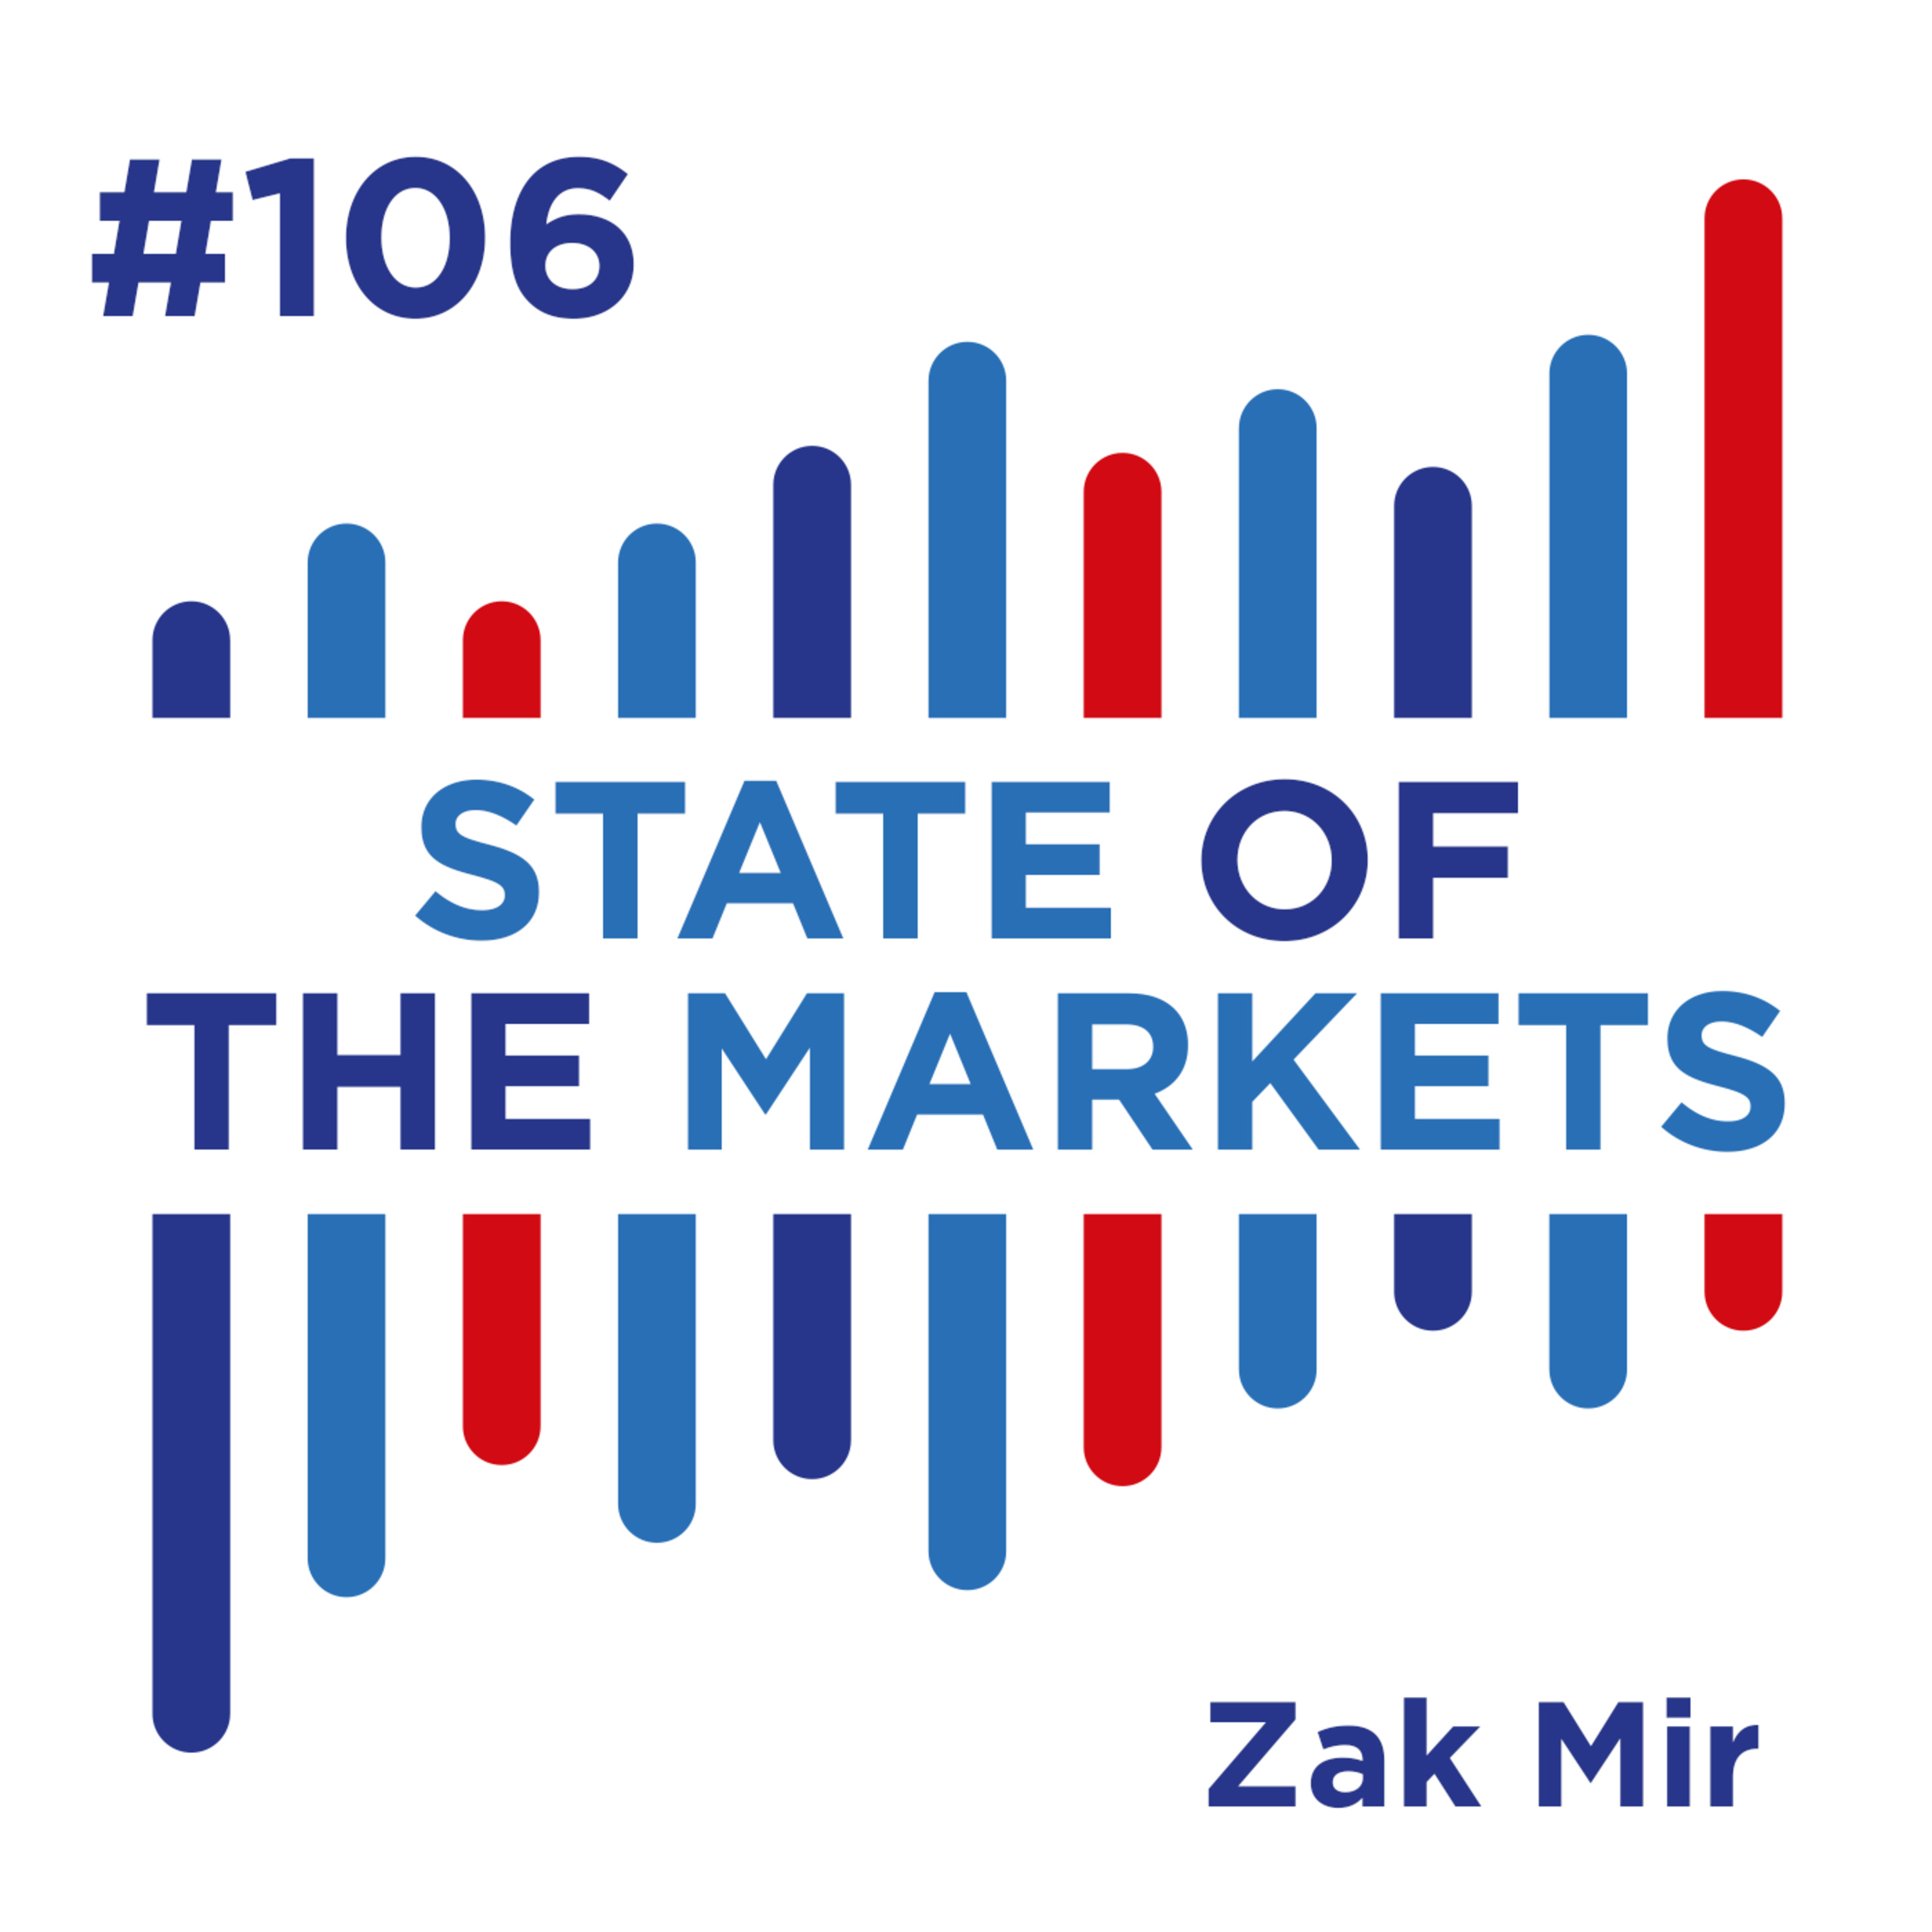 #106 Zak Mir Predicts: Trump or Biden? The 4th Dimension Party, no full stop